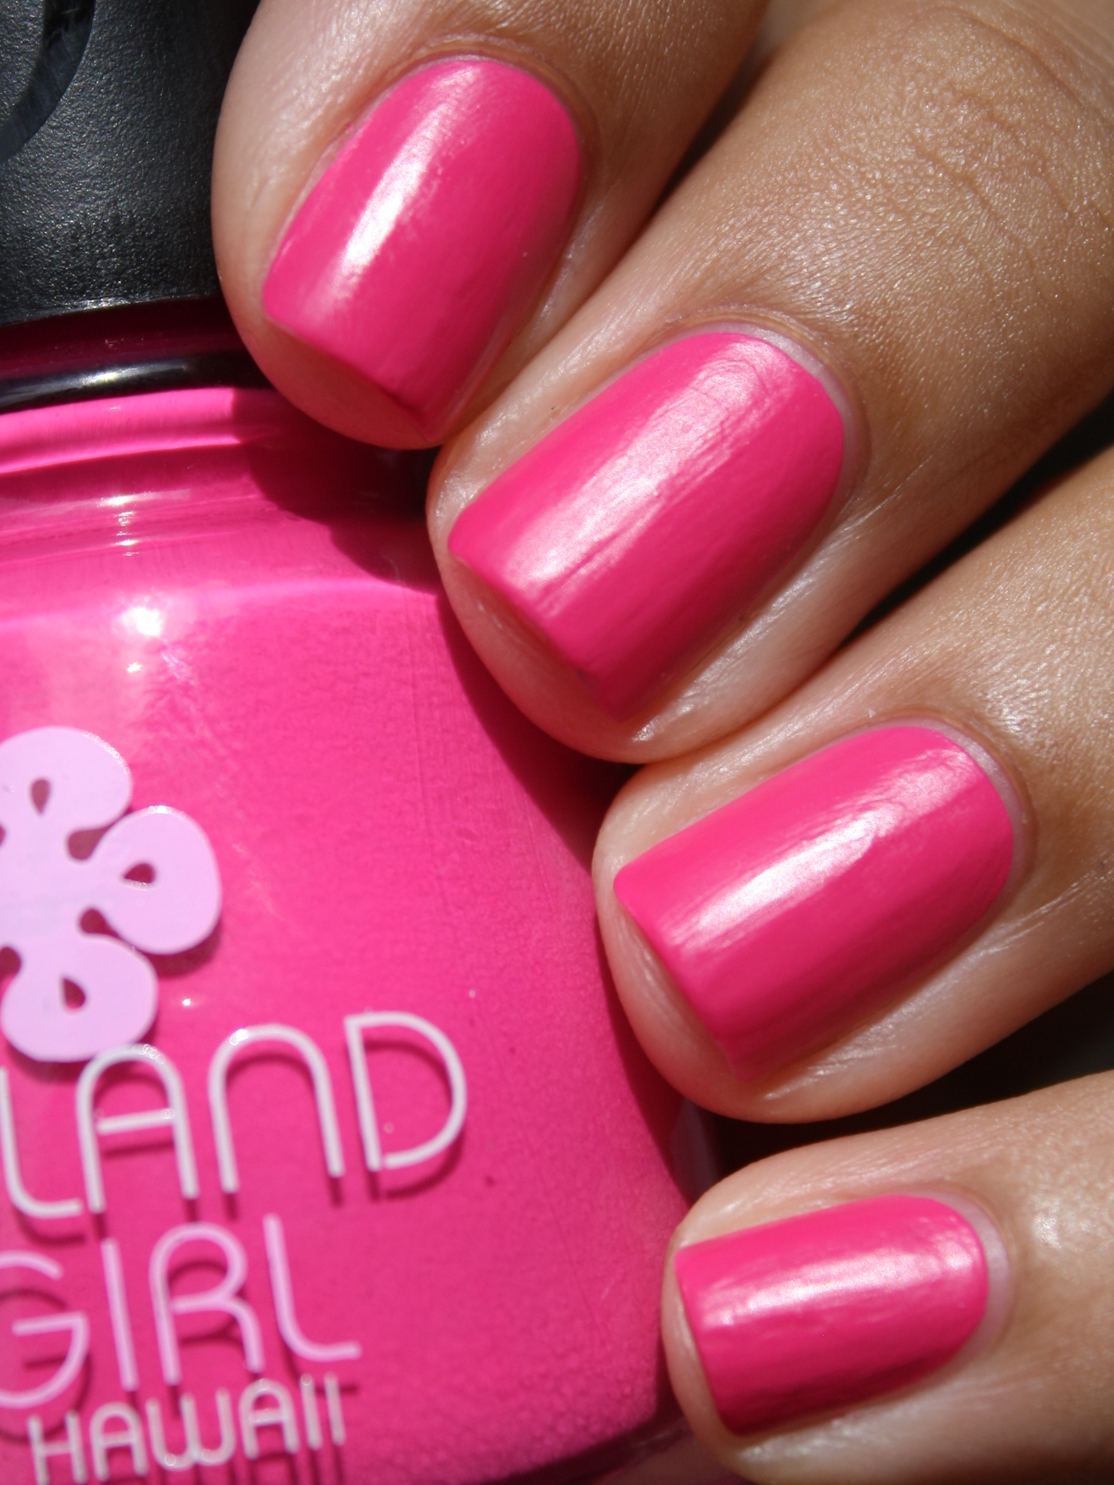 Mommy needs a manicure stat.: Island Girl Nail Polish: My First ...